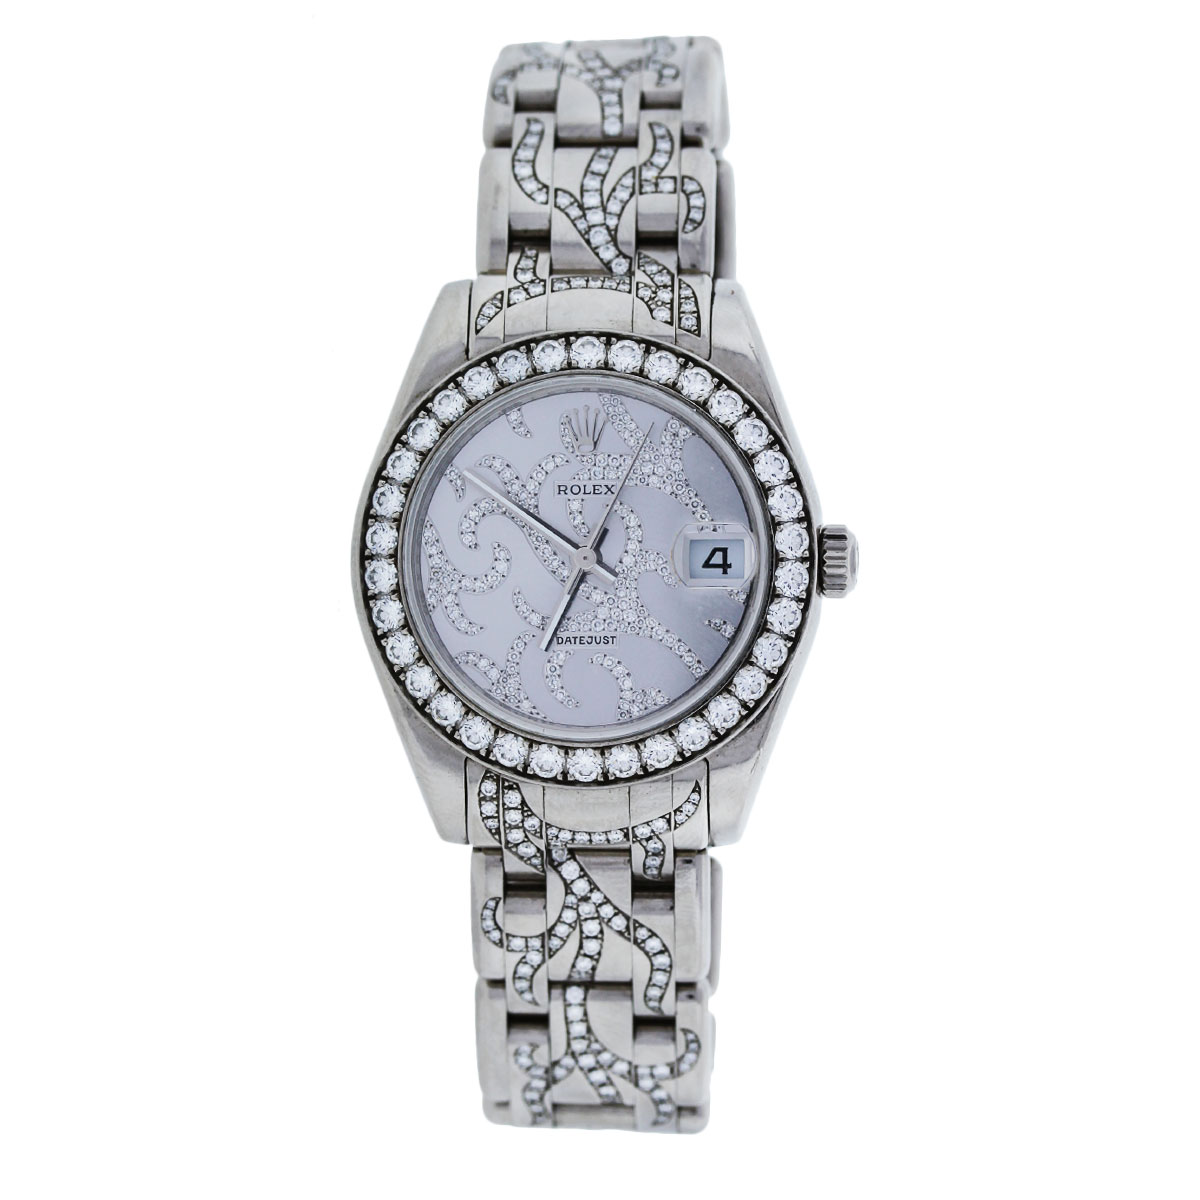 White Gold Pave Flamme Diamond Rolex Watch